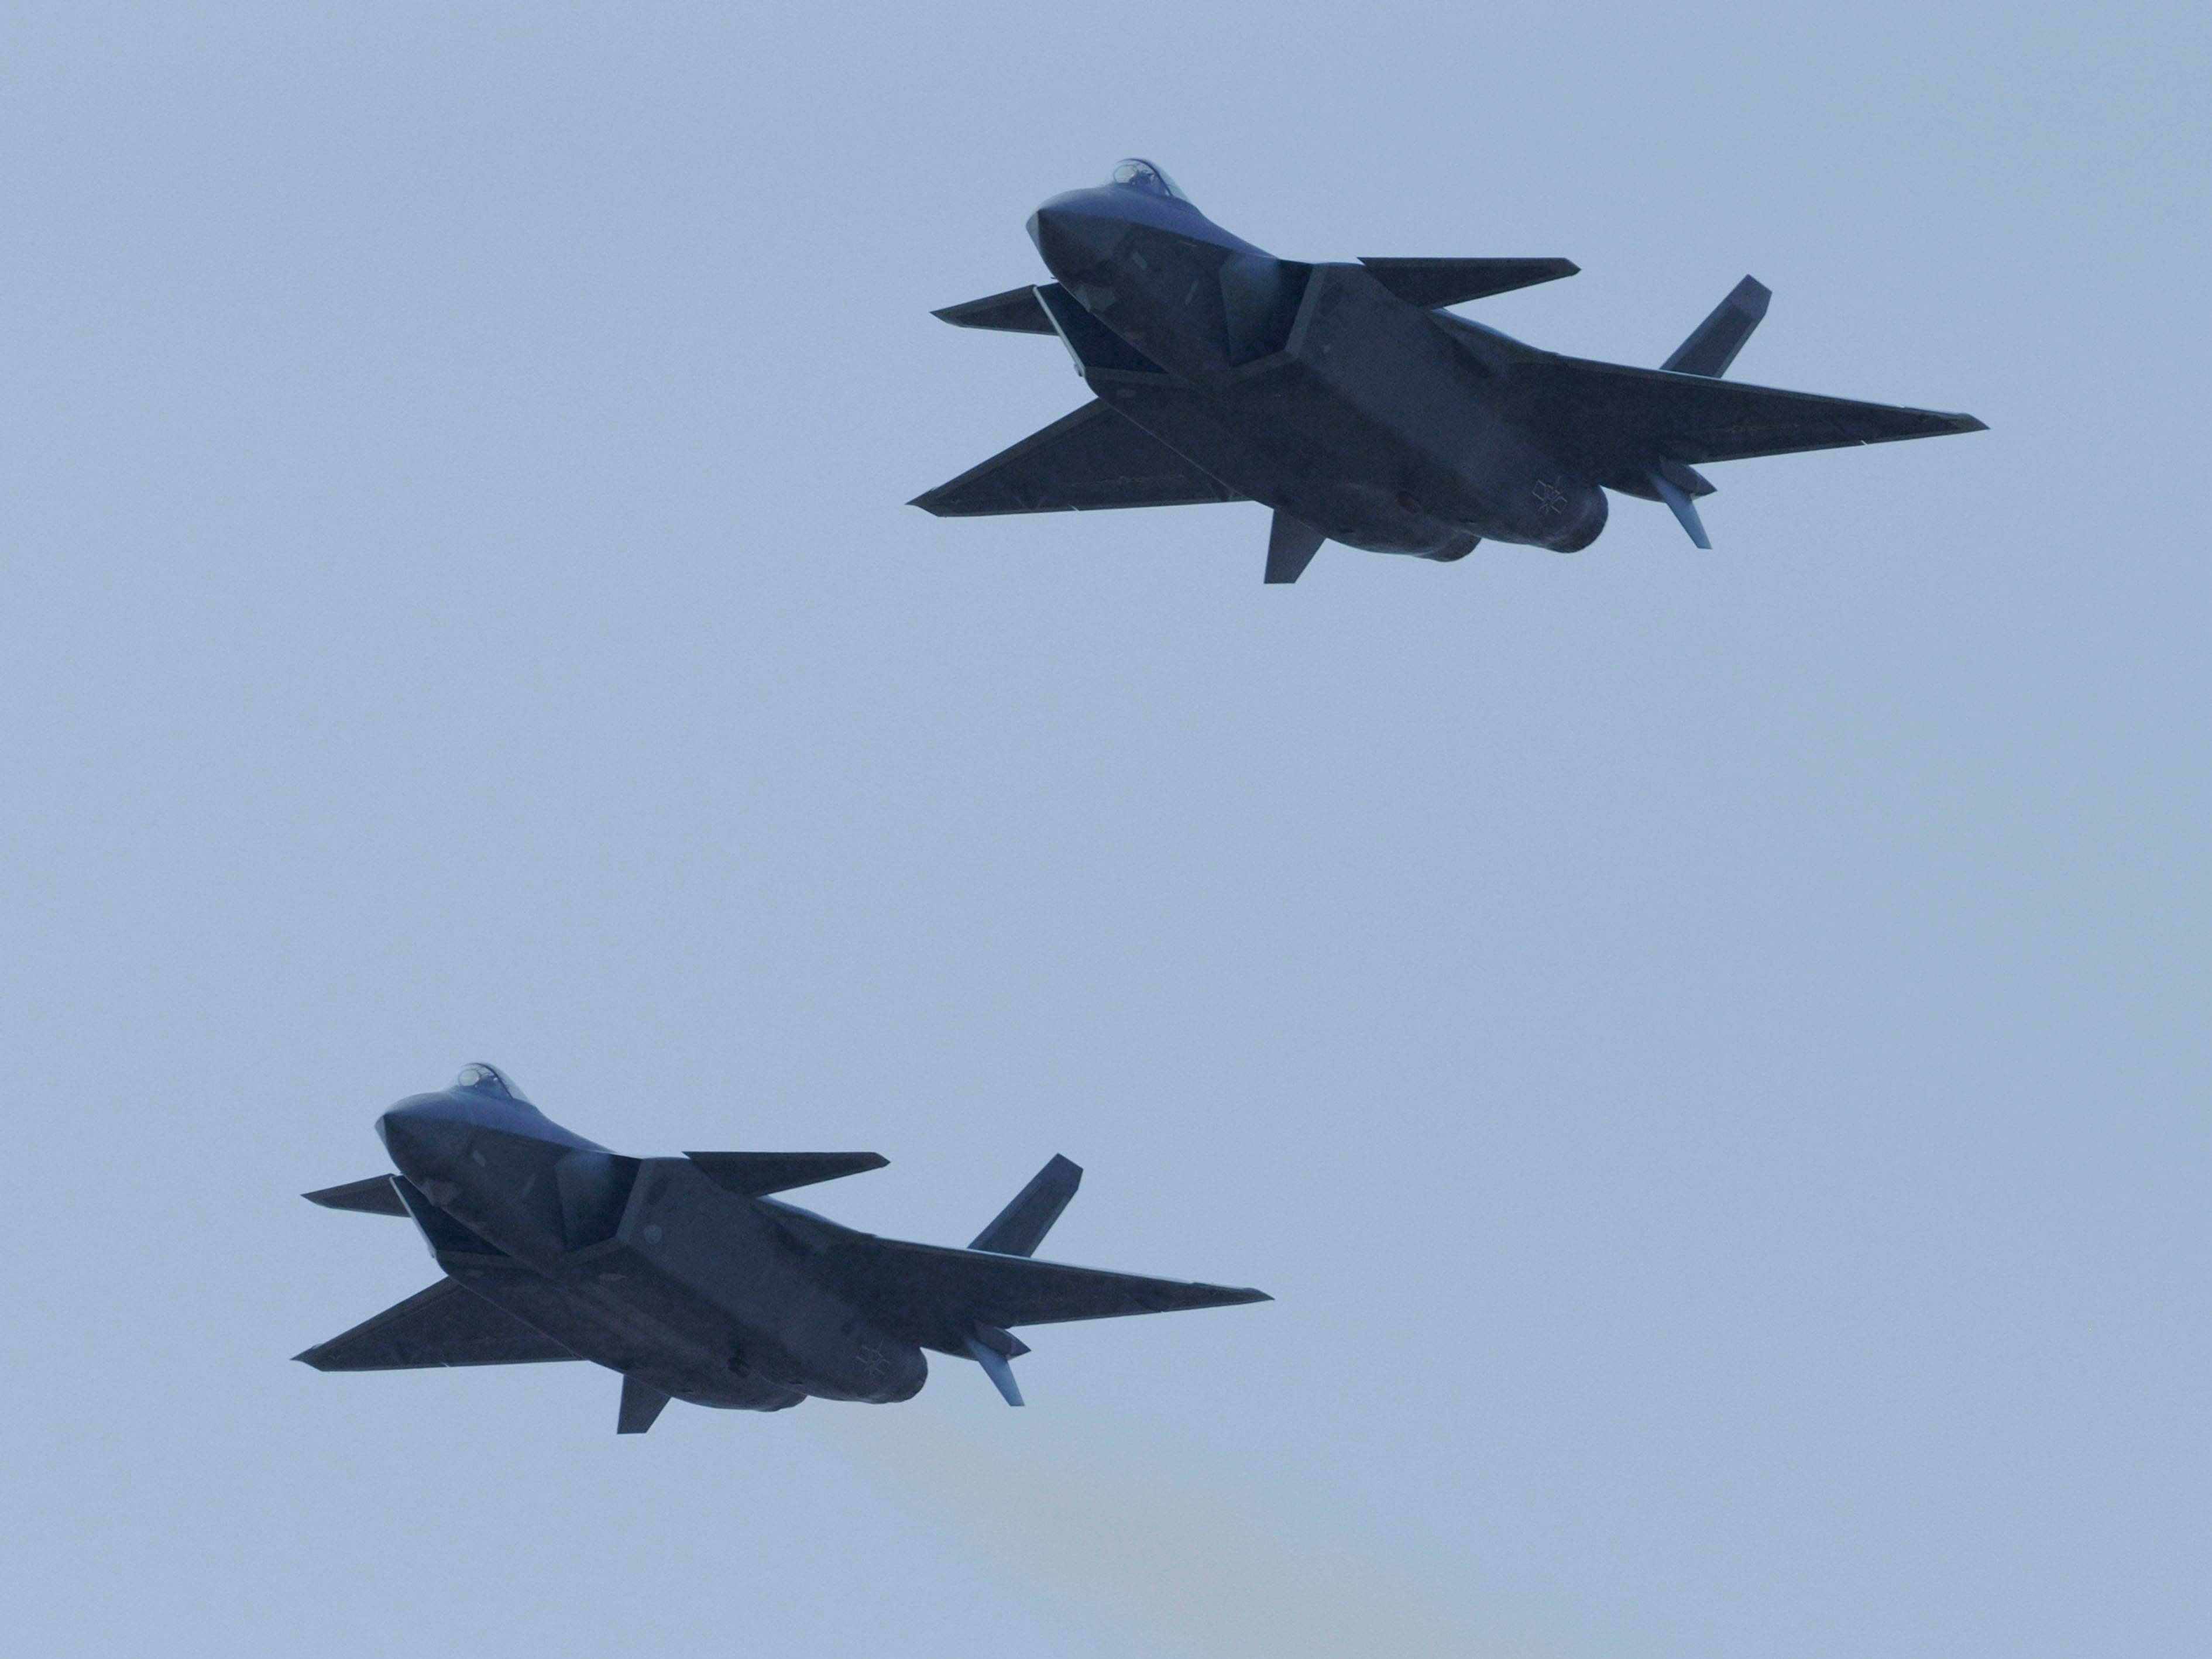 A pair of PLAAF J-20 stealth combat aircraft making a public debut at Airshow China 2016. Image credit: IHS Markit/Kelvin Wong